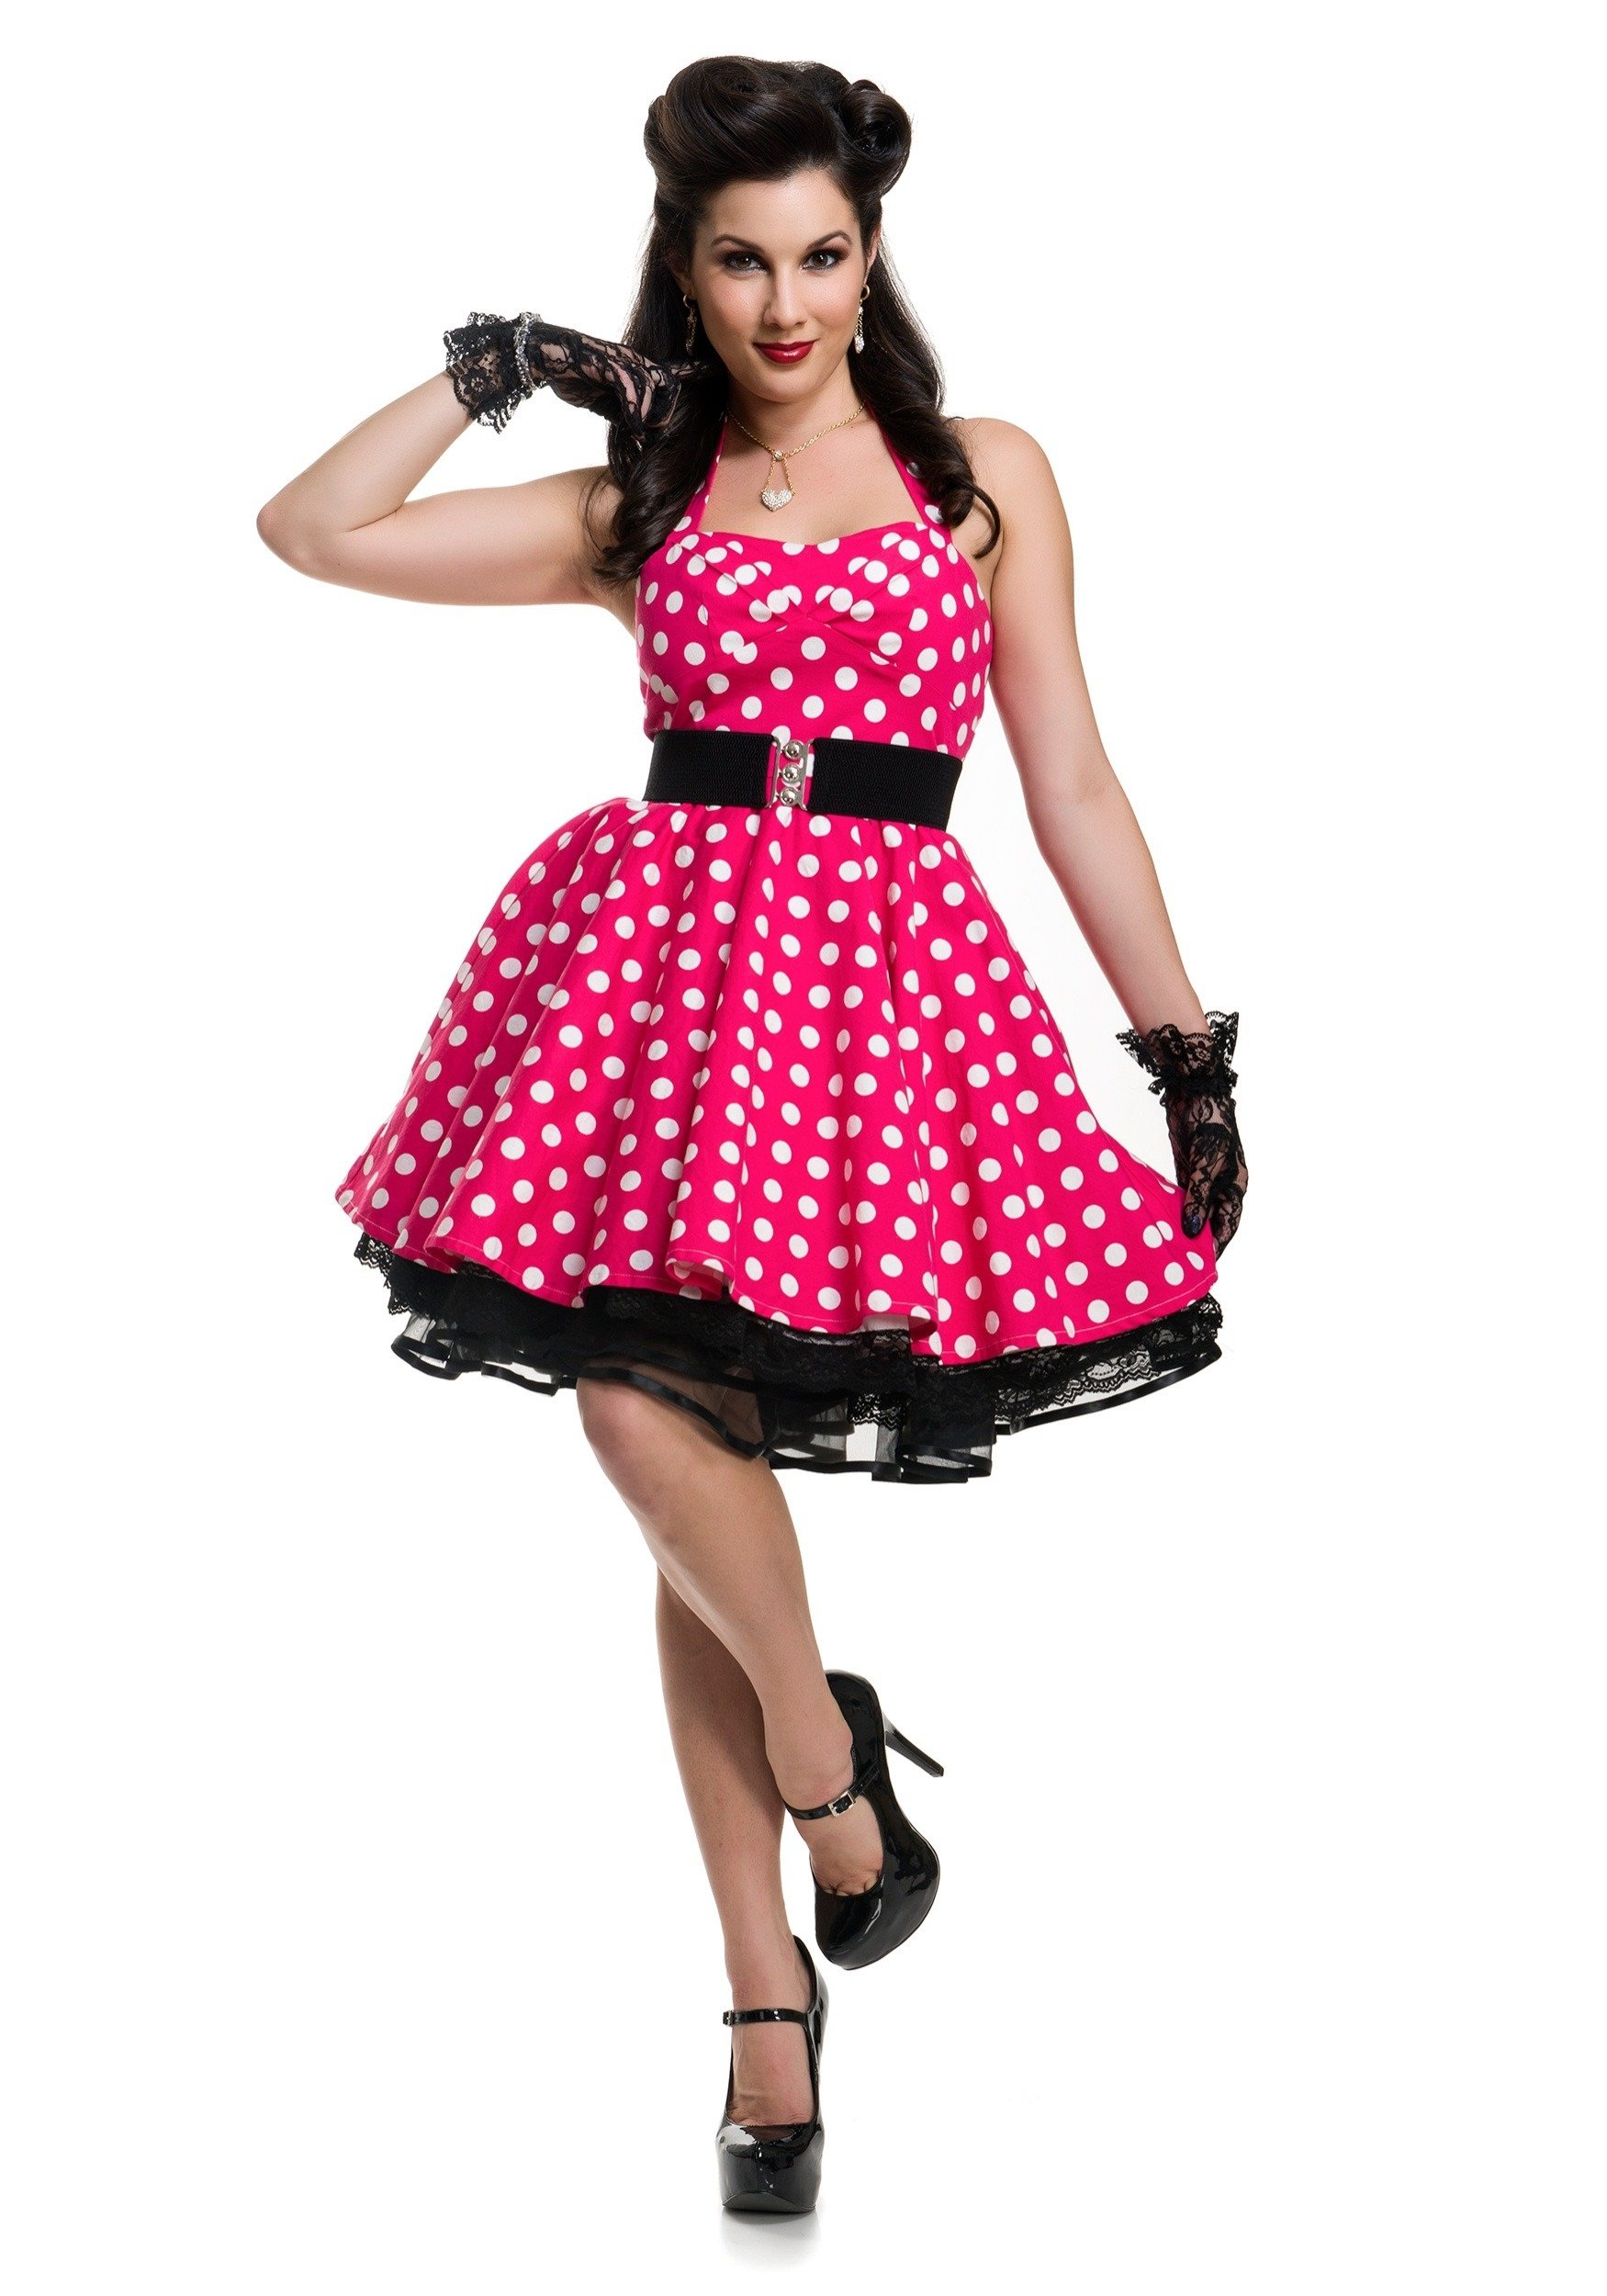 10 Famous Pin Up Girl Costumes Ideas womens pink polka dot pin up costume 2020